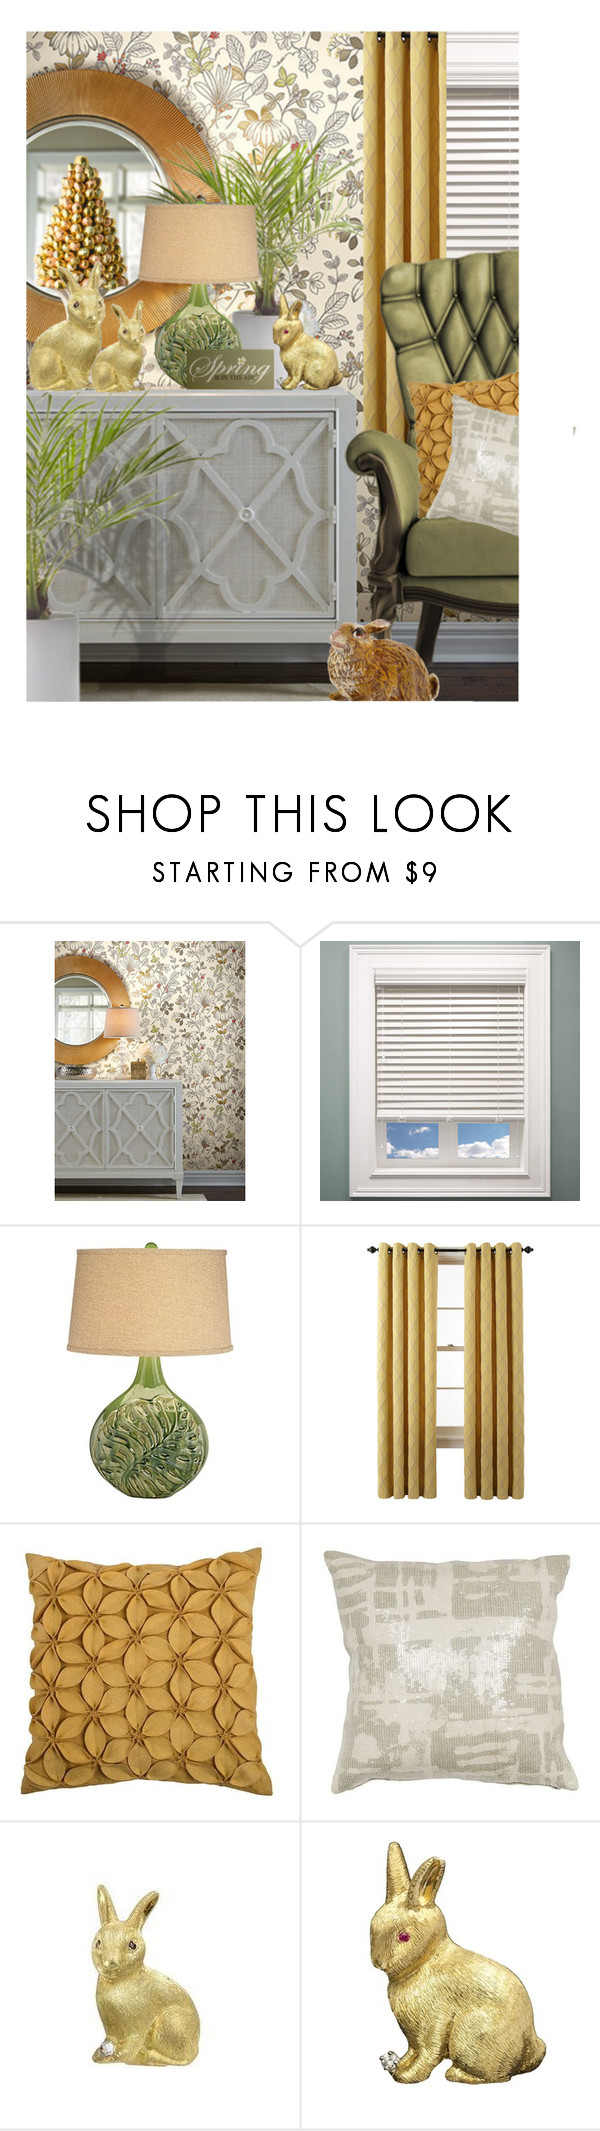 """""""Spring Is In The Air"""" by queenrachietemplateaddict ❤ liked on Polyvore featuring interior, interiors, interior design, home, home decor, interior decorating, York Wallcoverings, Chicology, Universal Lighting and Decor and Martha Stewart"""